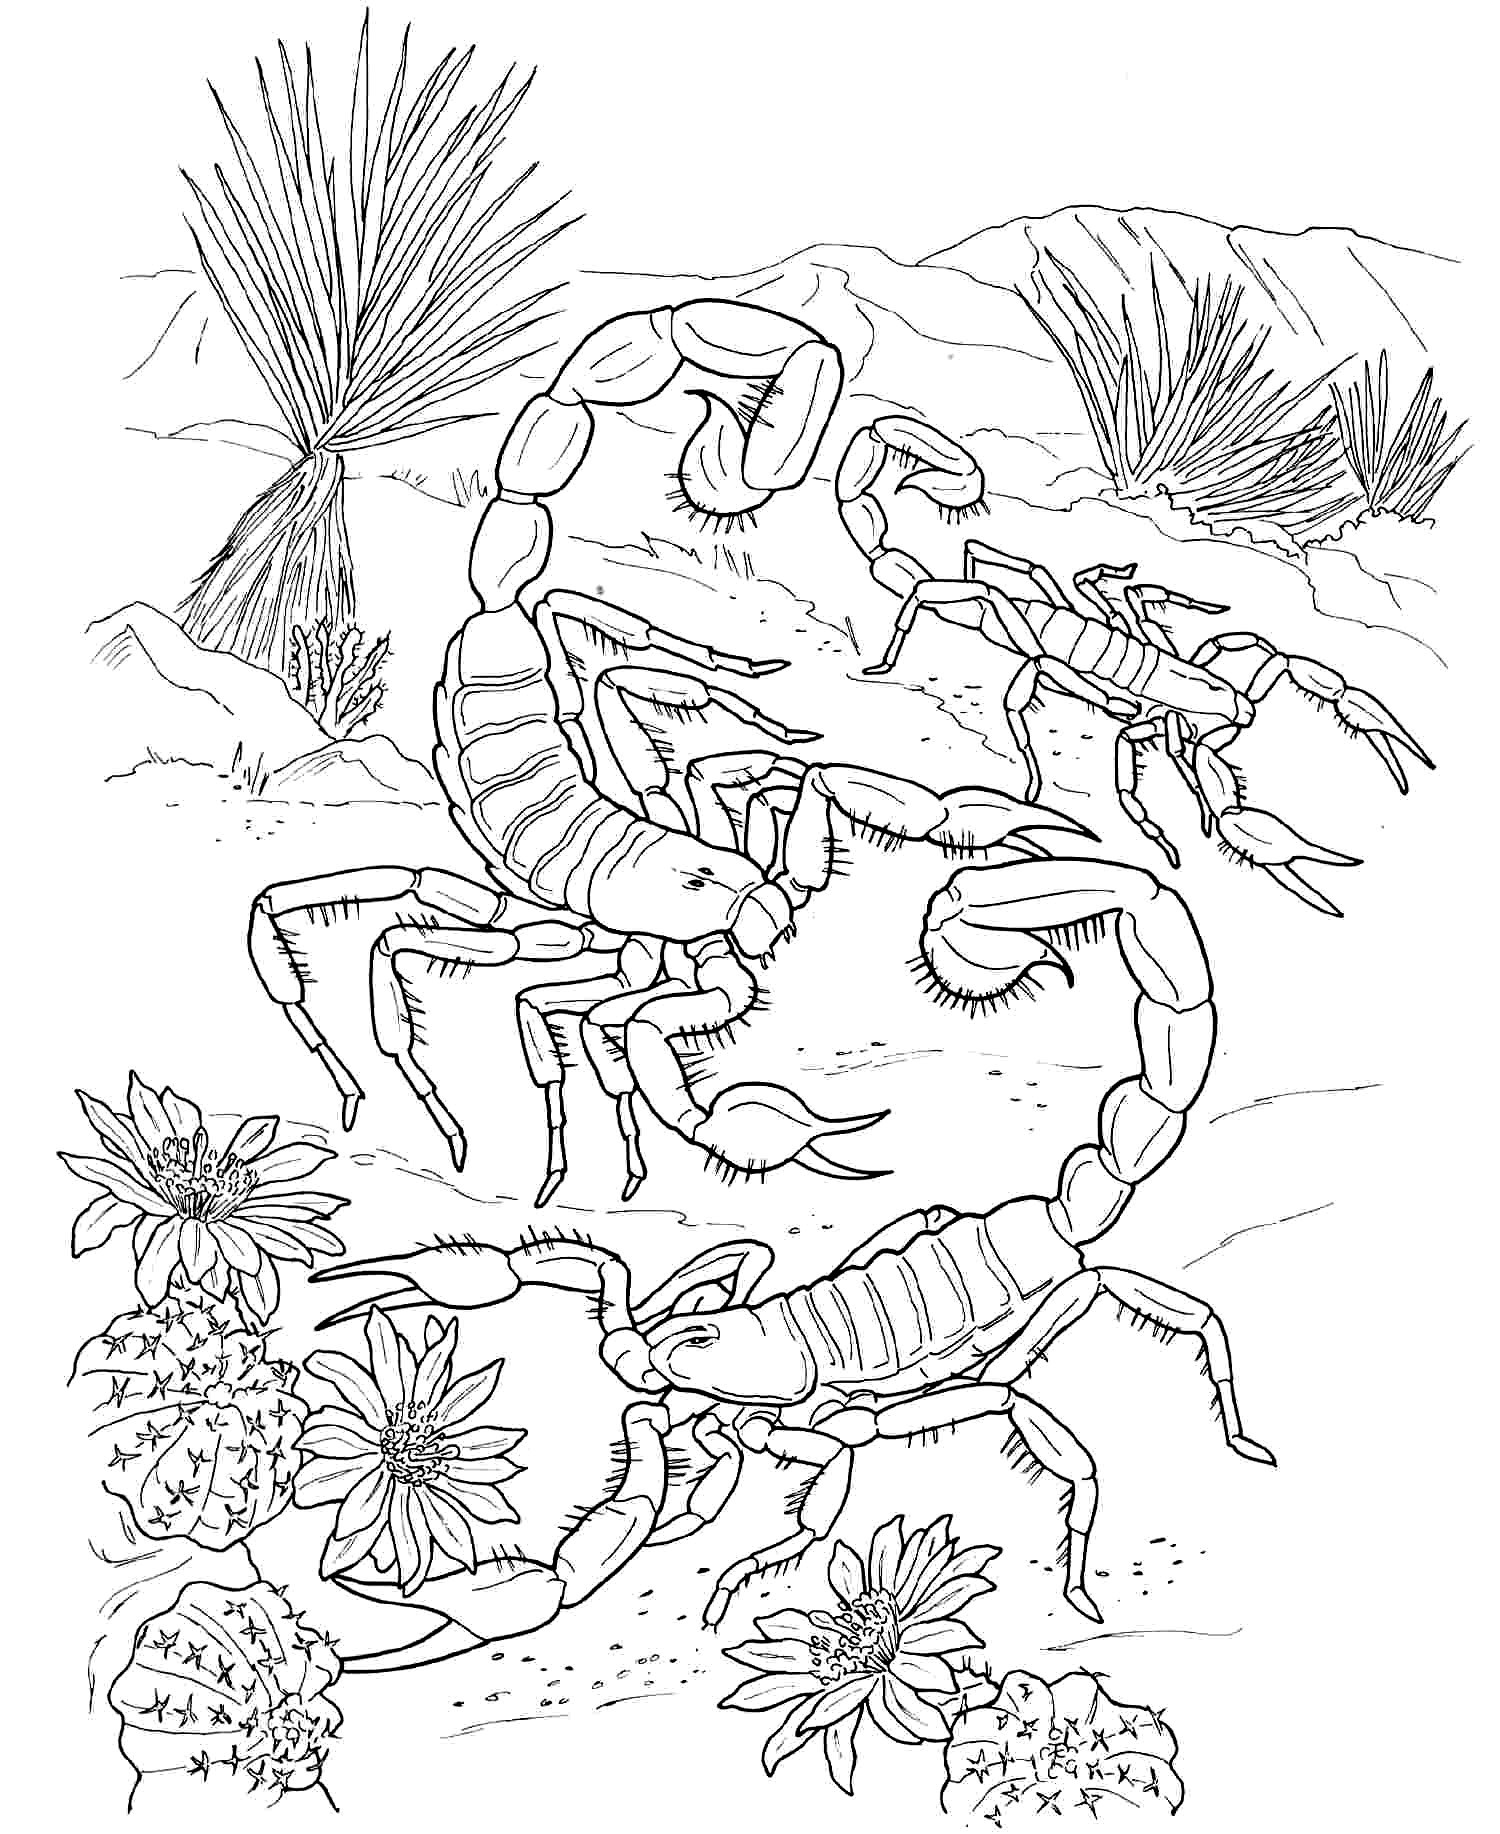 Desert Ecosystem Drawing At Getdrawings